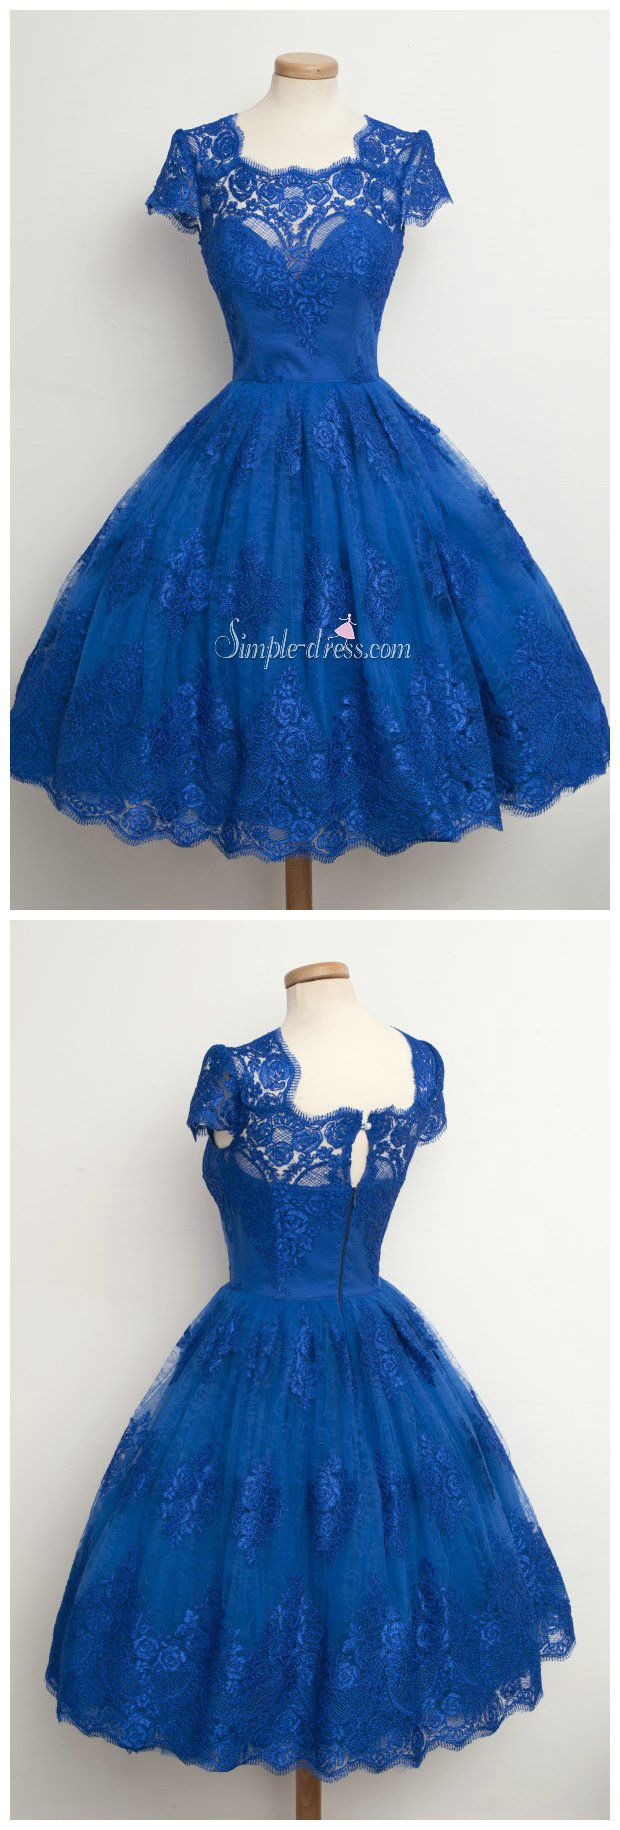 vintage 1950s dress, prom dress, homecoming dress, royal blue short lace dress